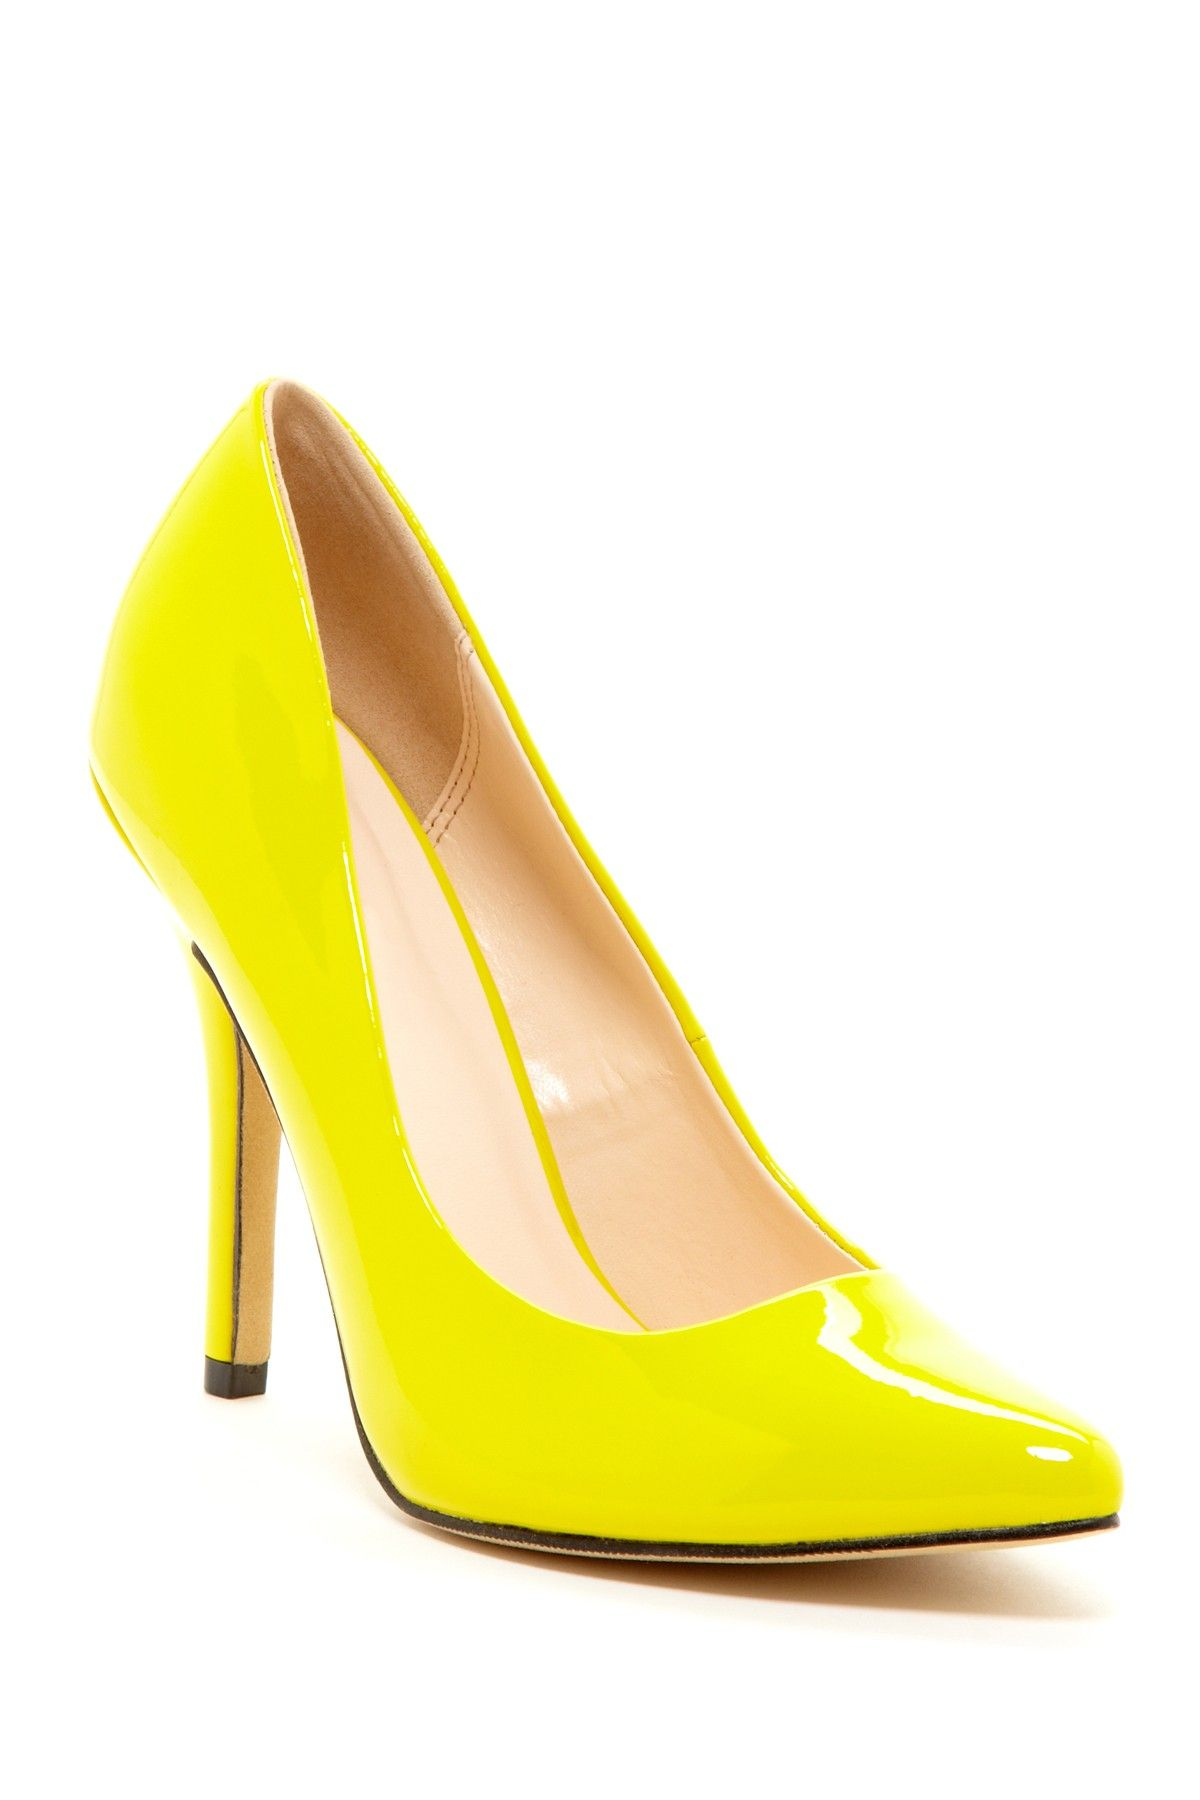 BIGTREE Patent Leather Thin Heels Office Shoes Women